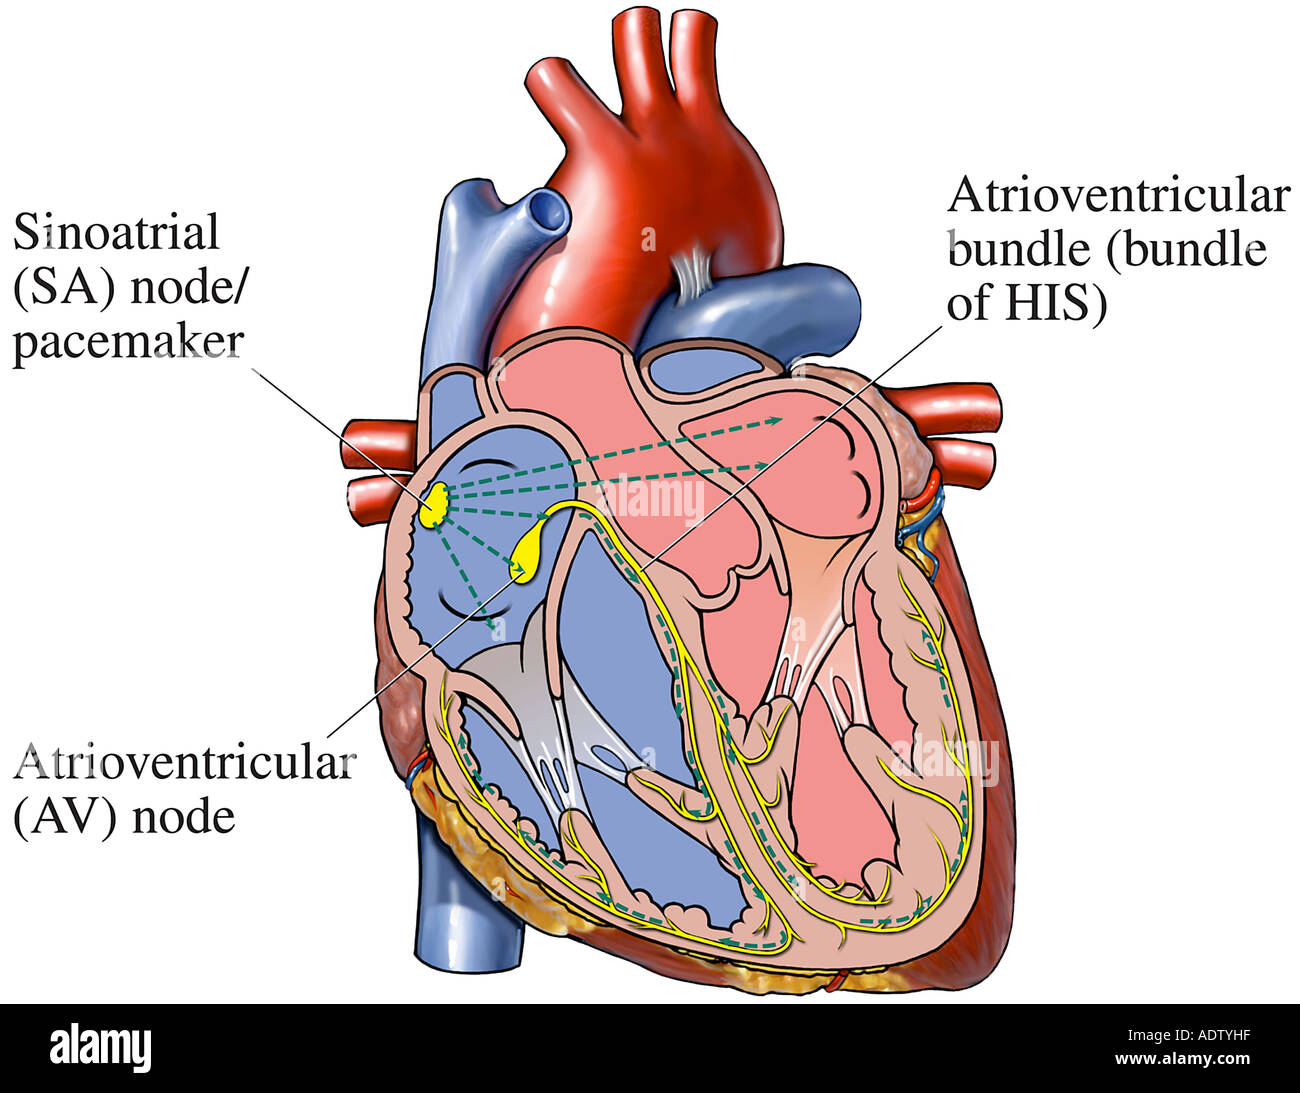 Heart Electrical System Stock Photos & Heart Electrical System ...